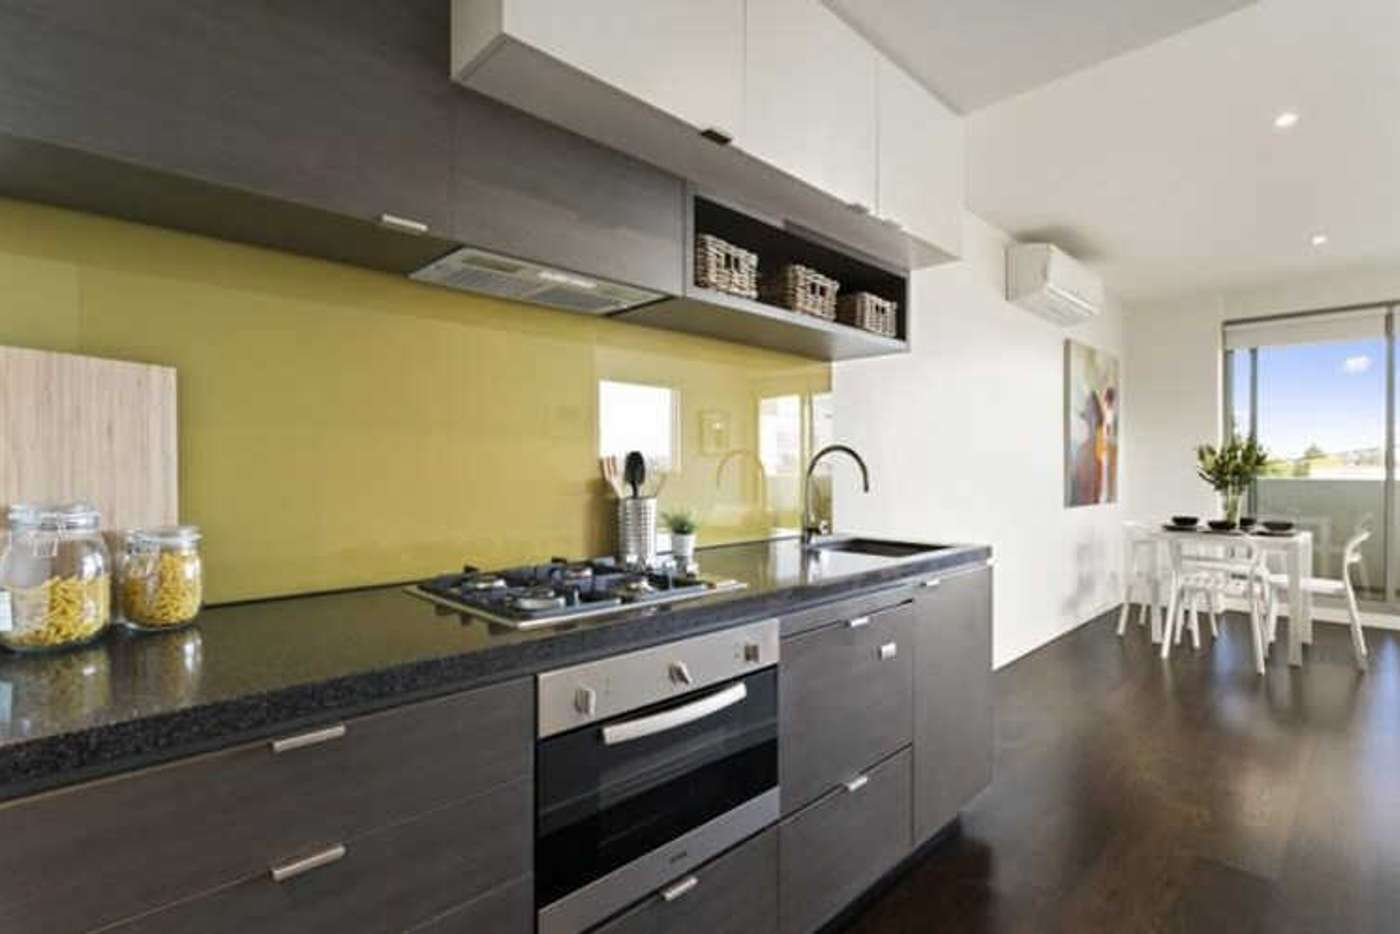 Main view of Homely apartment listing, 208/120 Palmer Street, Richmond VIC 3121